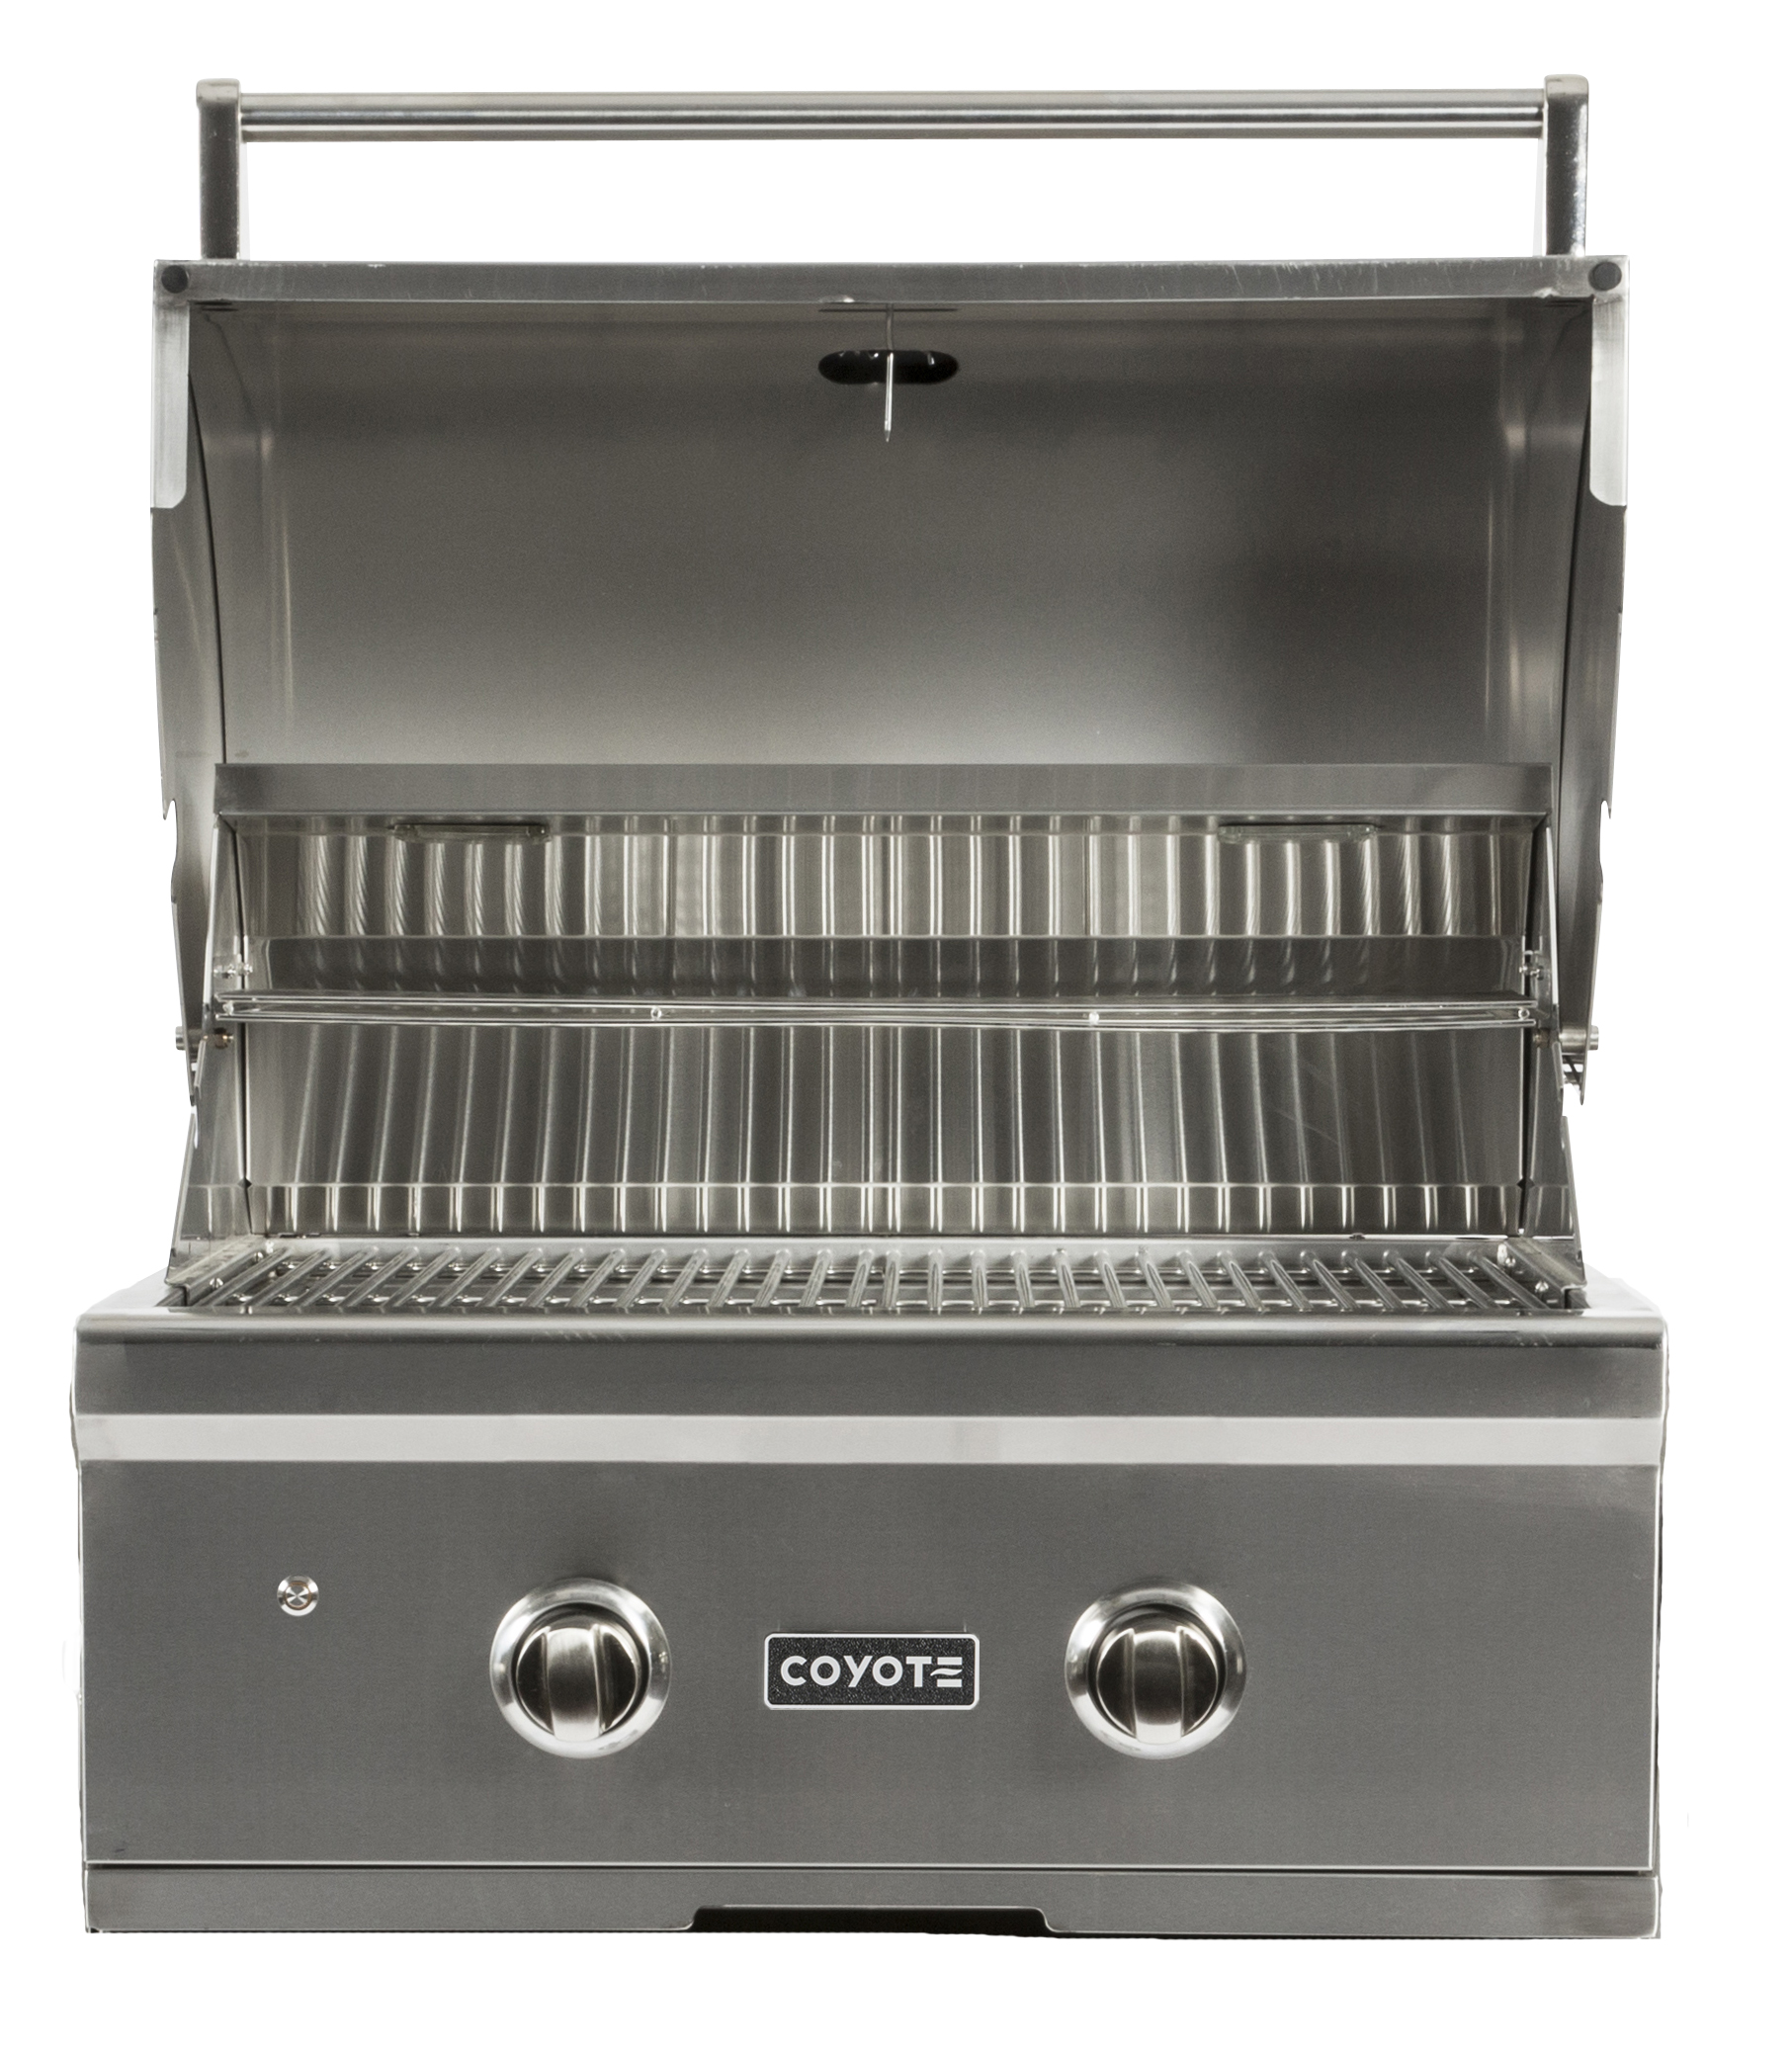 Outdoor Grill 28 C Series Grill Model C1c28 Ng Lp Fs Coyote Outdoor Living